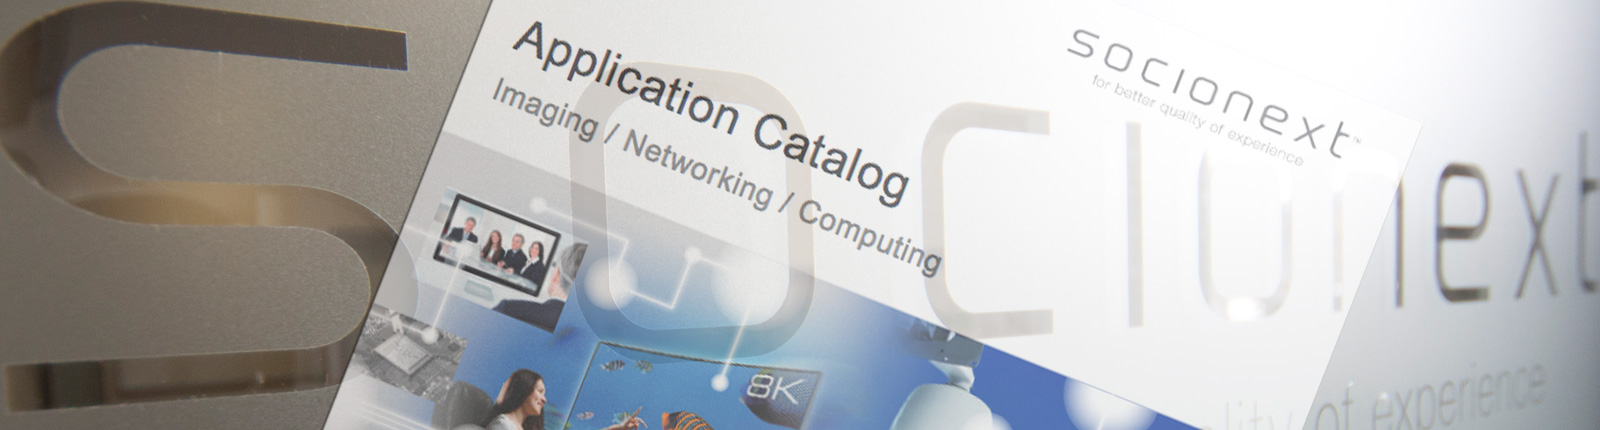 Applications Catalog